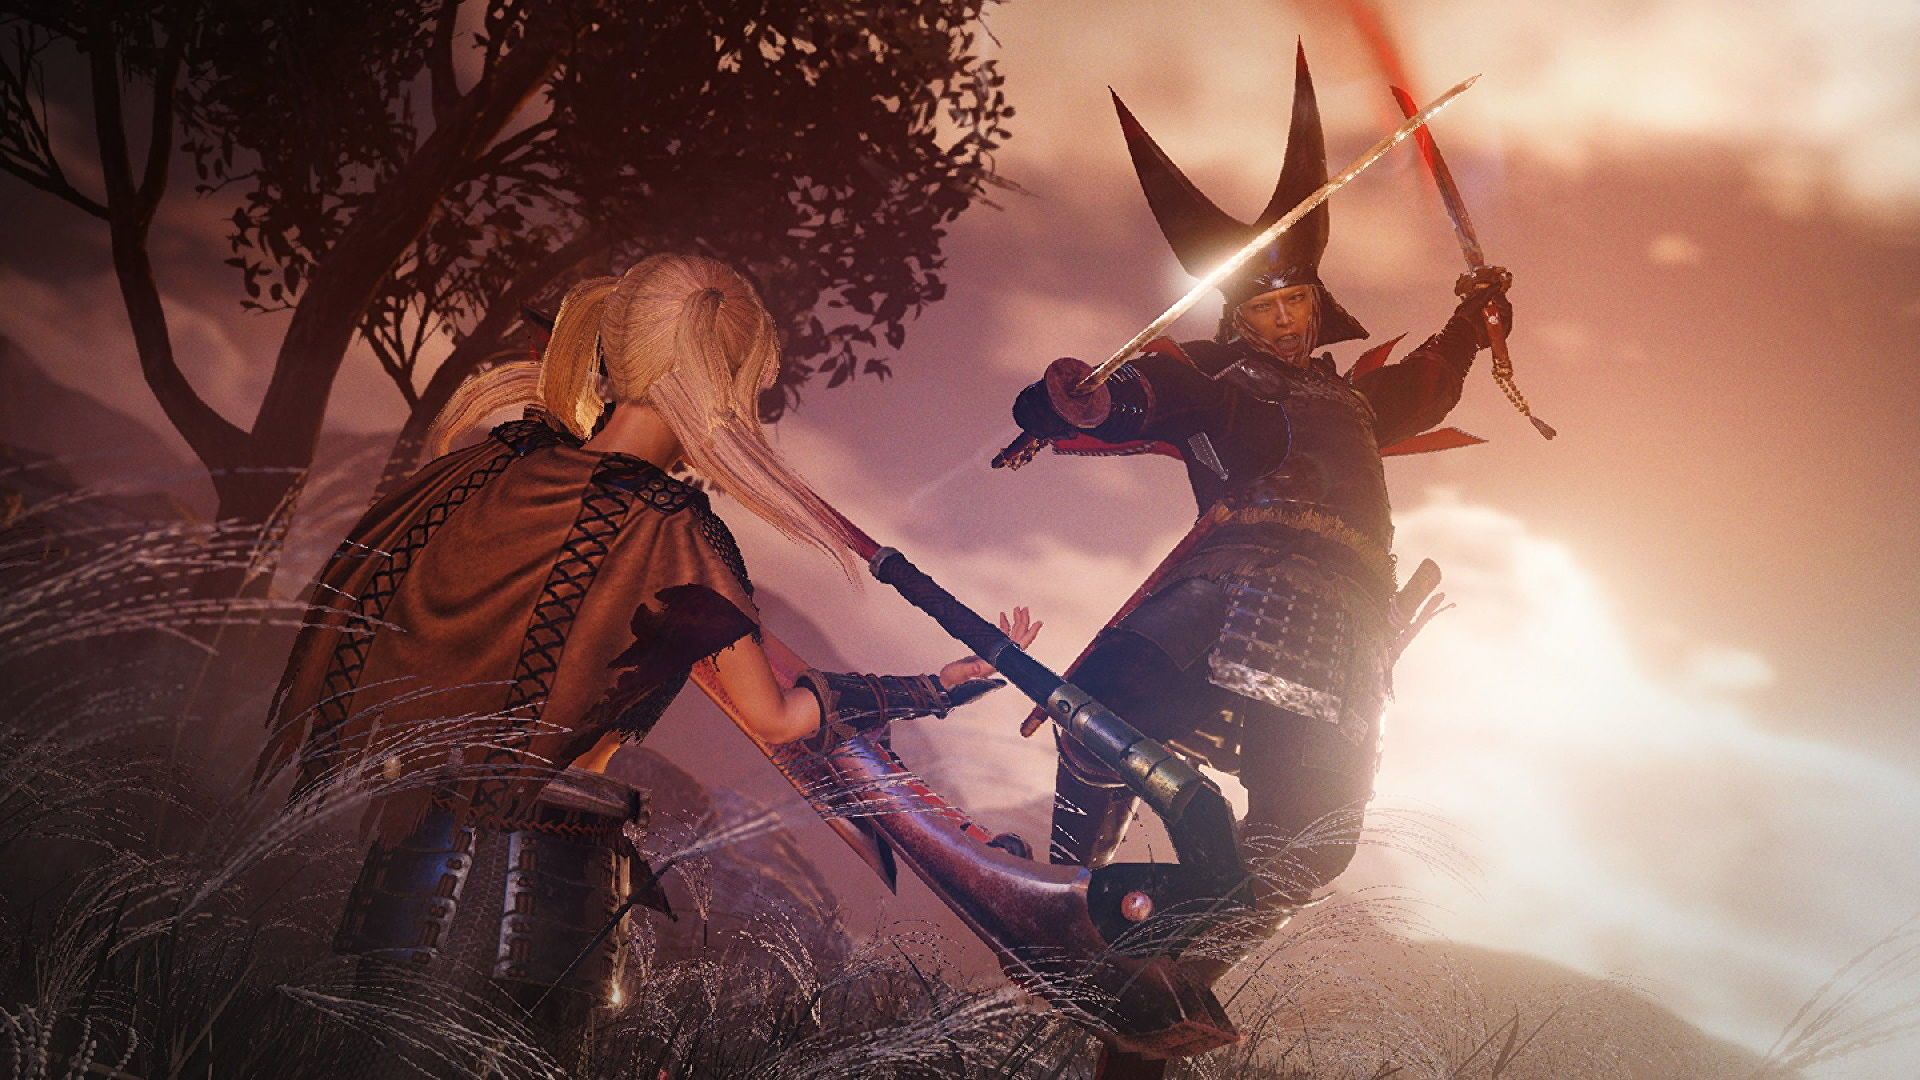 Pre-order Nioh 2 and get Prey for free at Gamesplanet